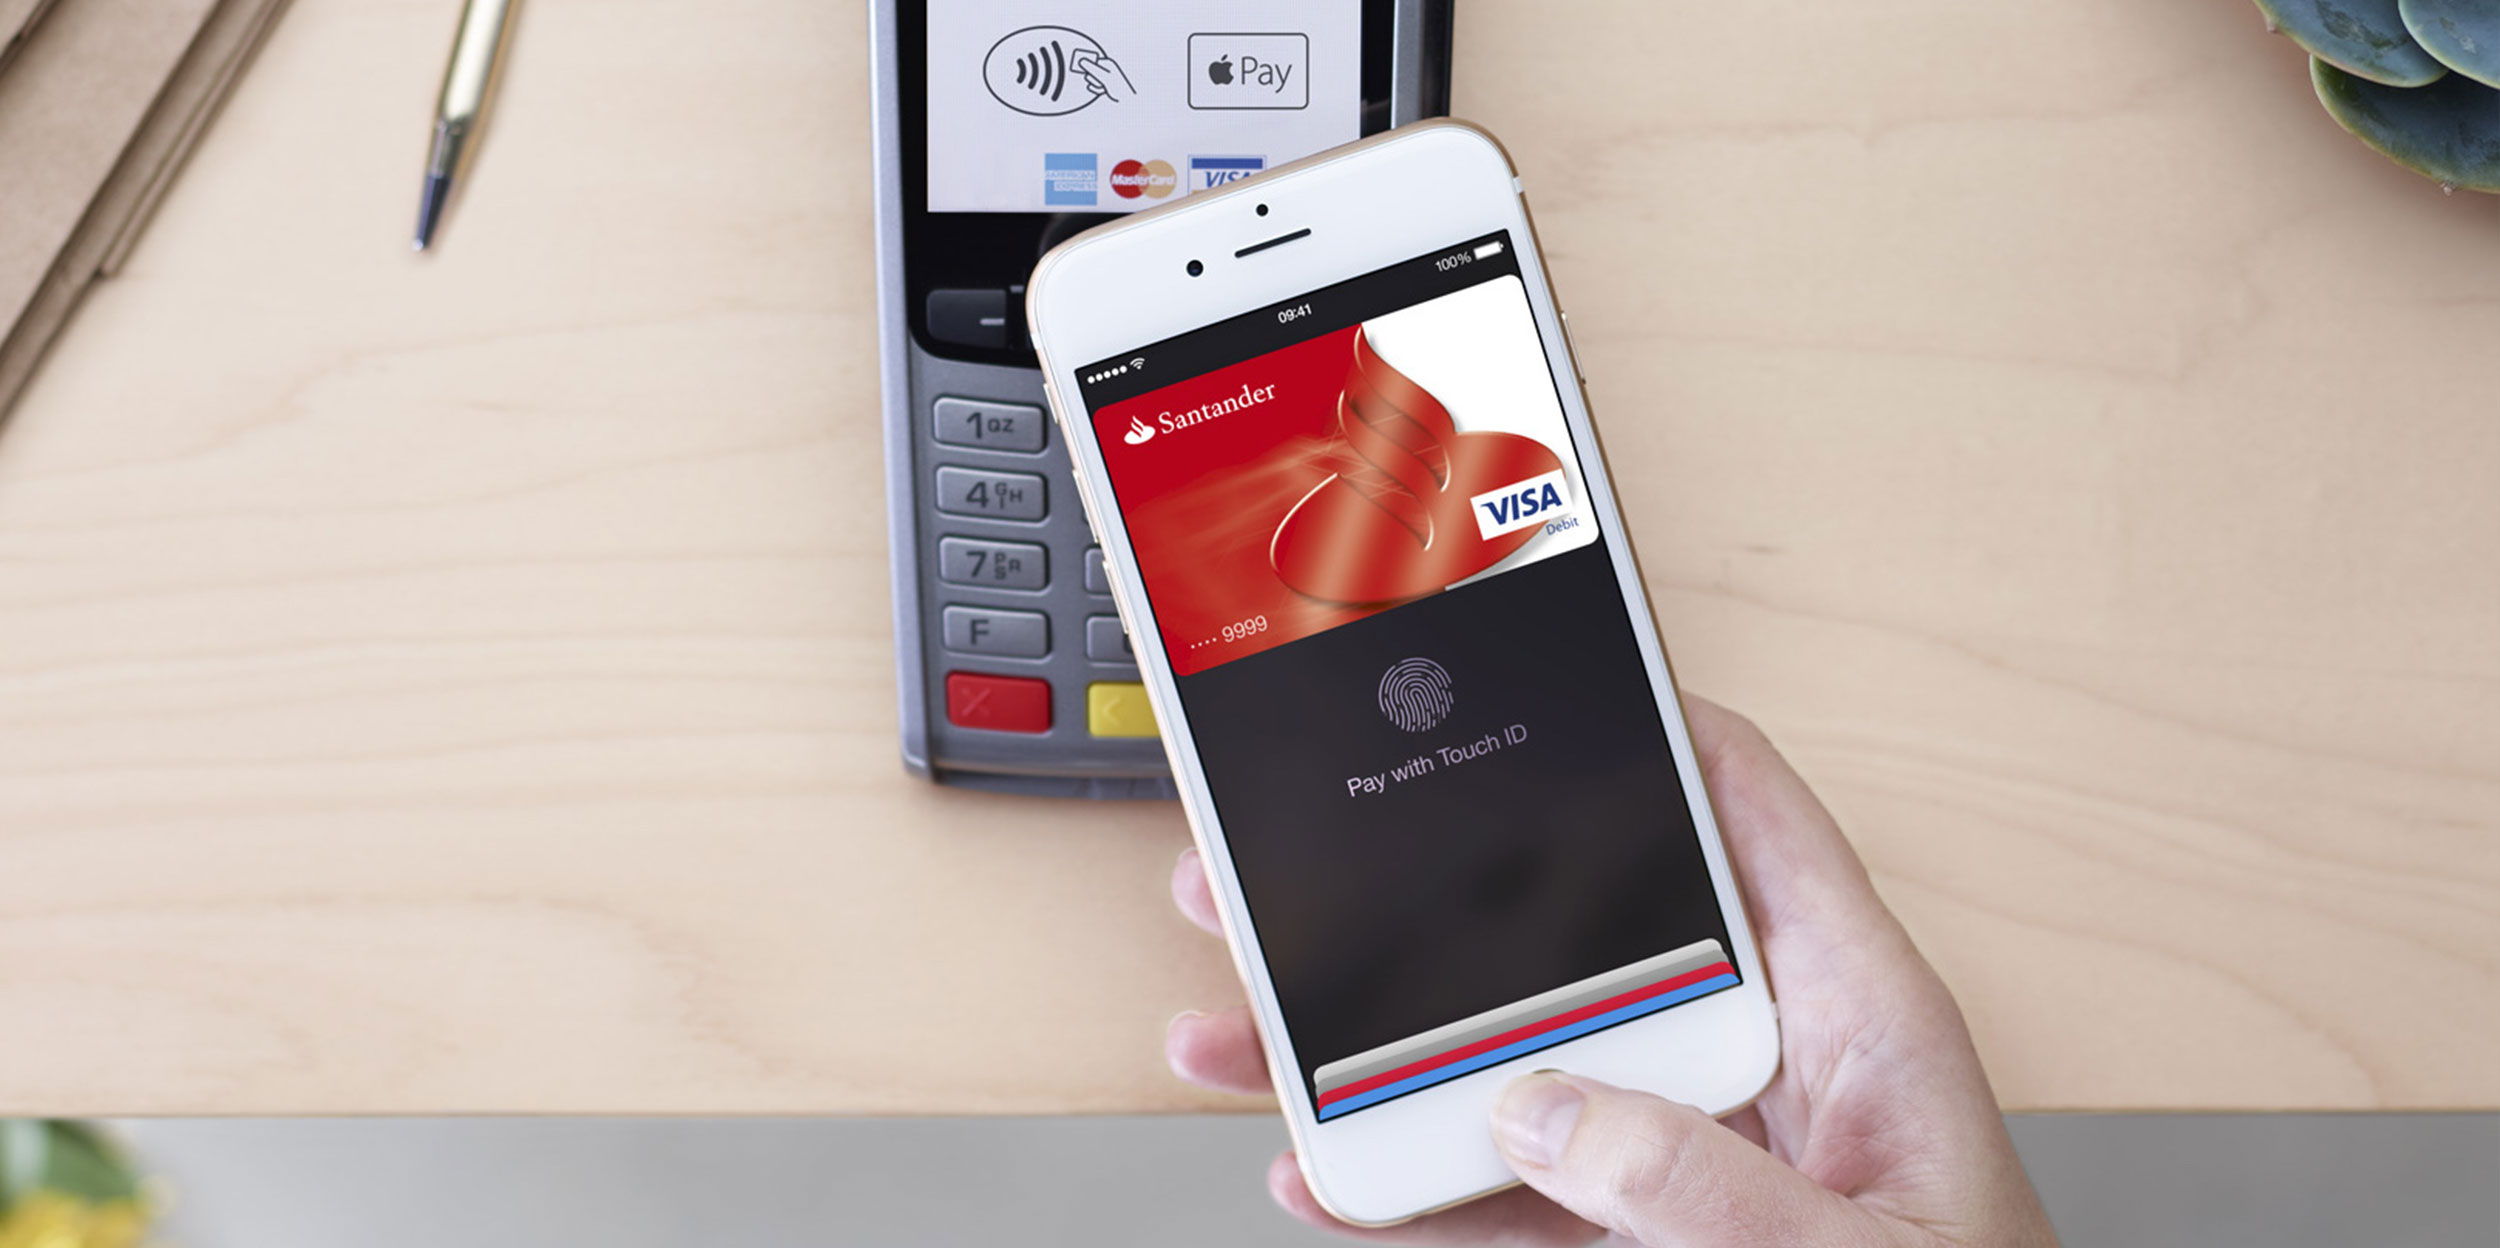 An iPhone using Apple Pay on a credit card reader.